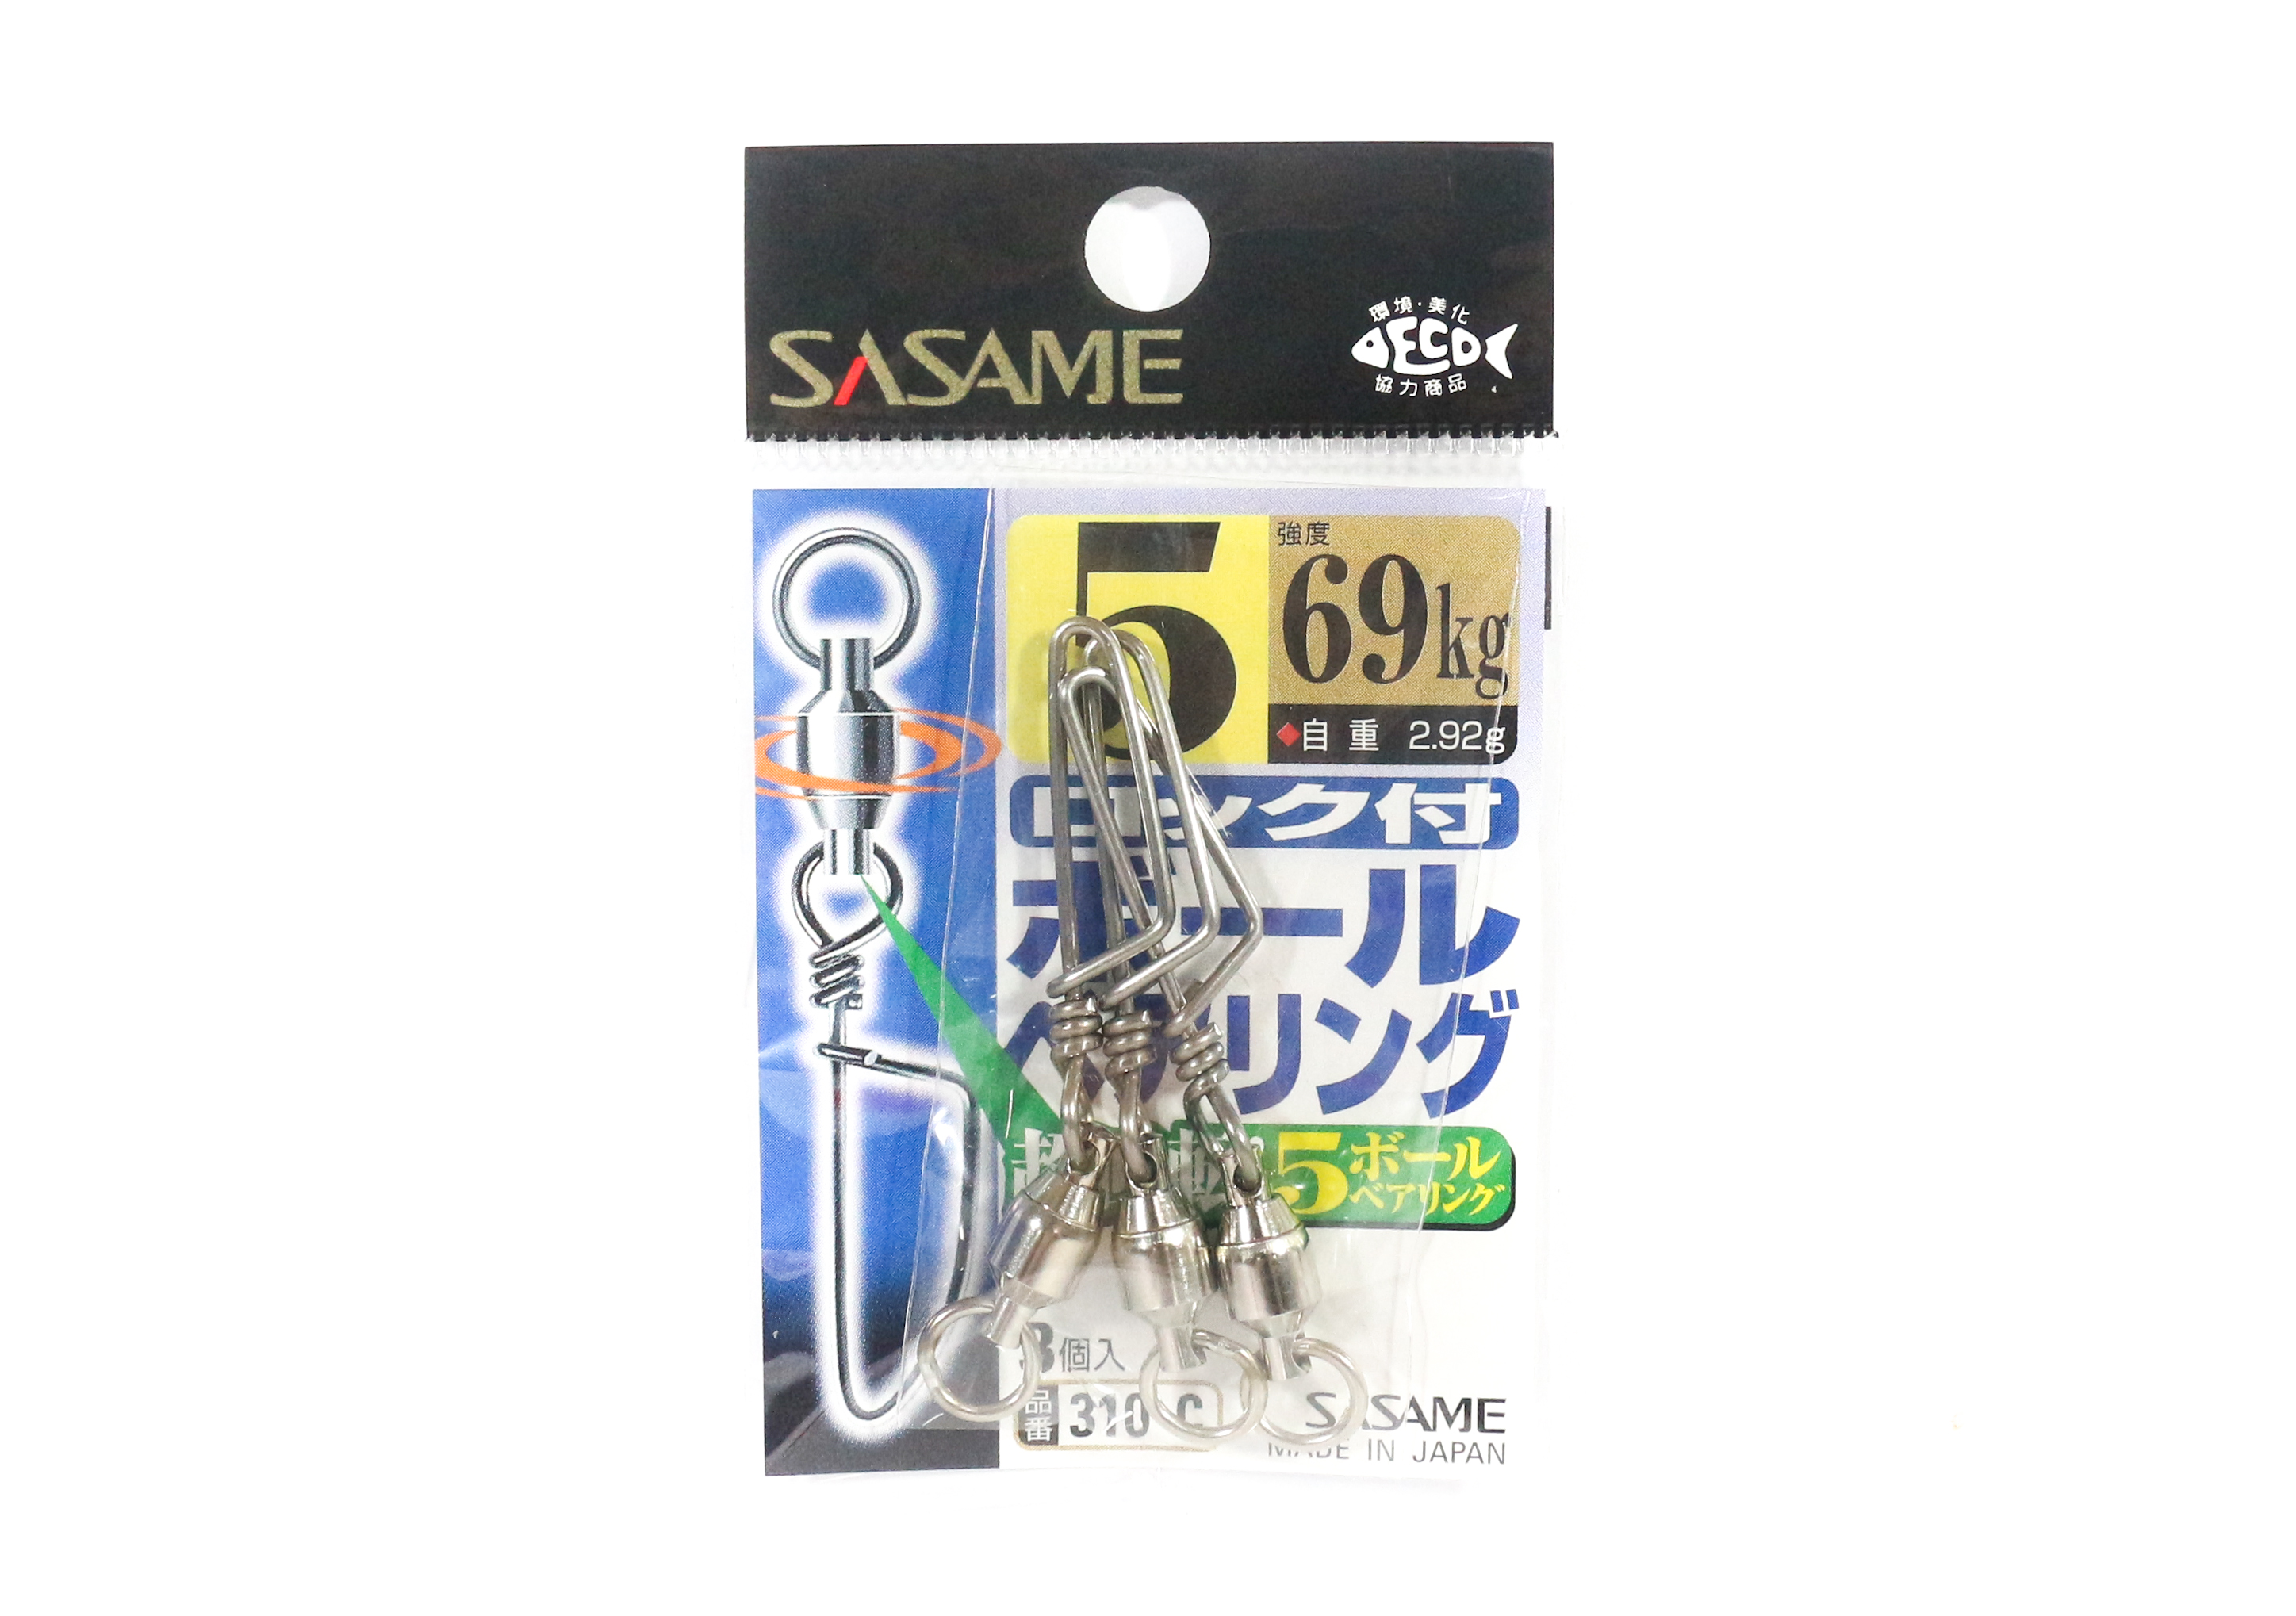 Sasame 310-C Ball Bearing Snap Swivels High Quality Size 5 (1706)